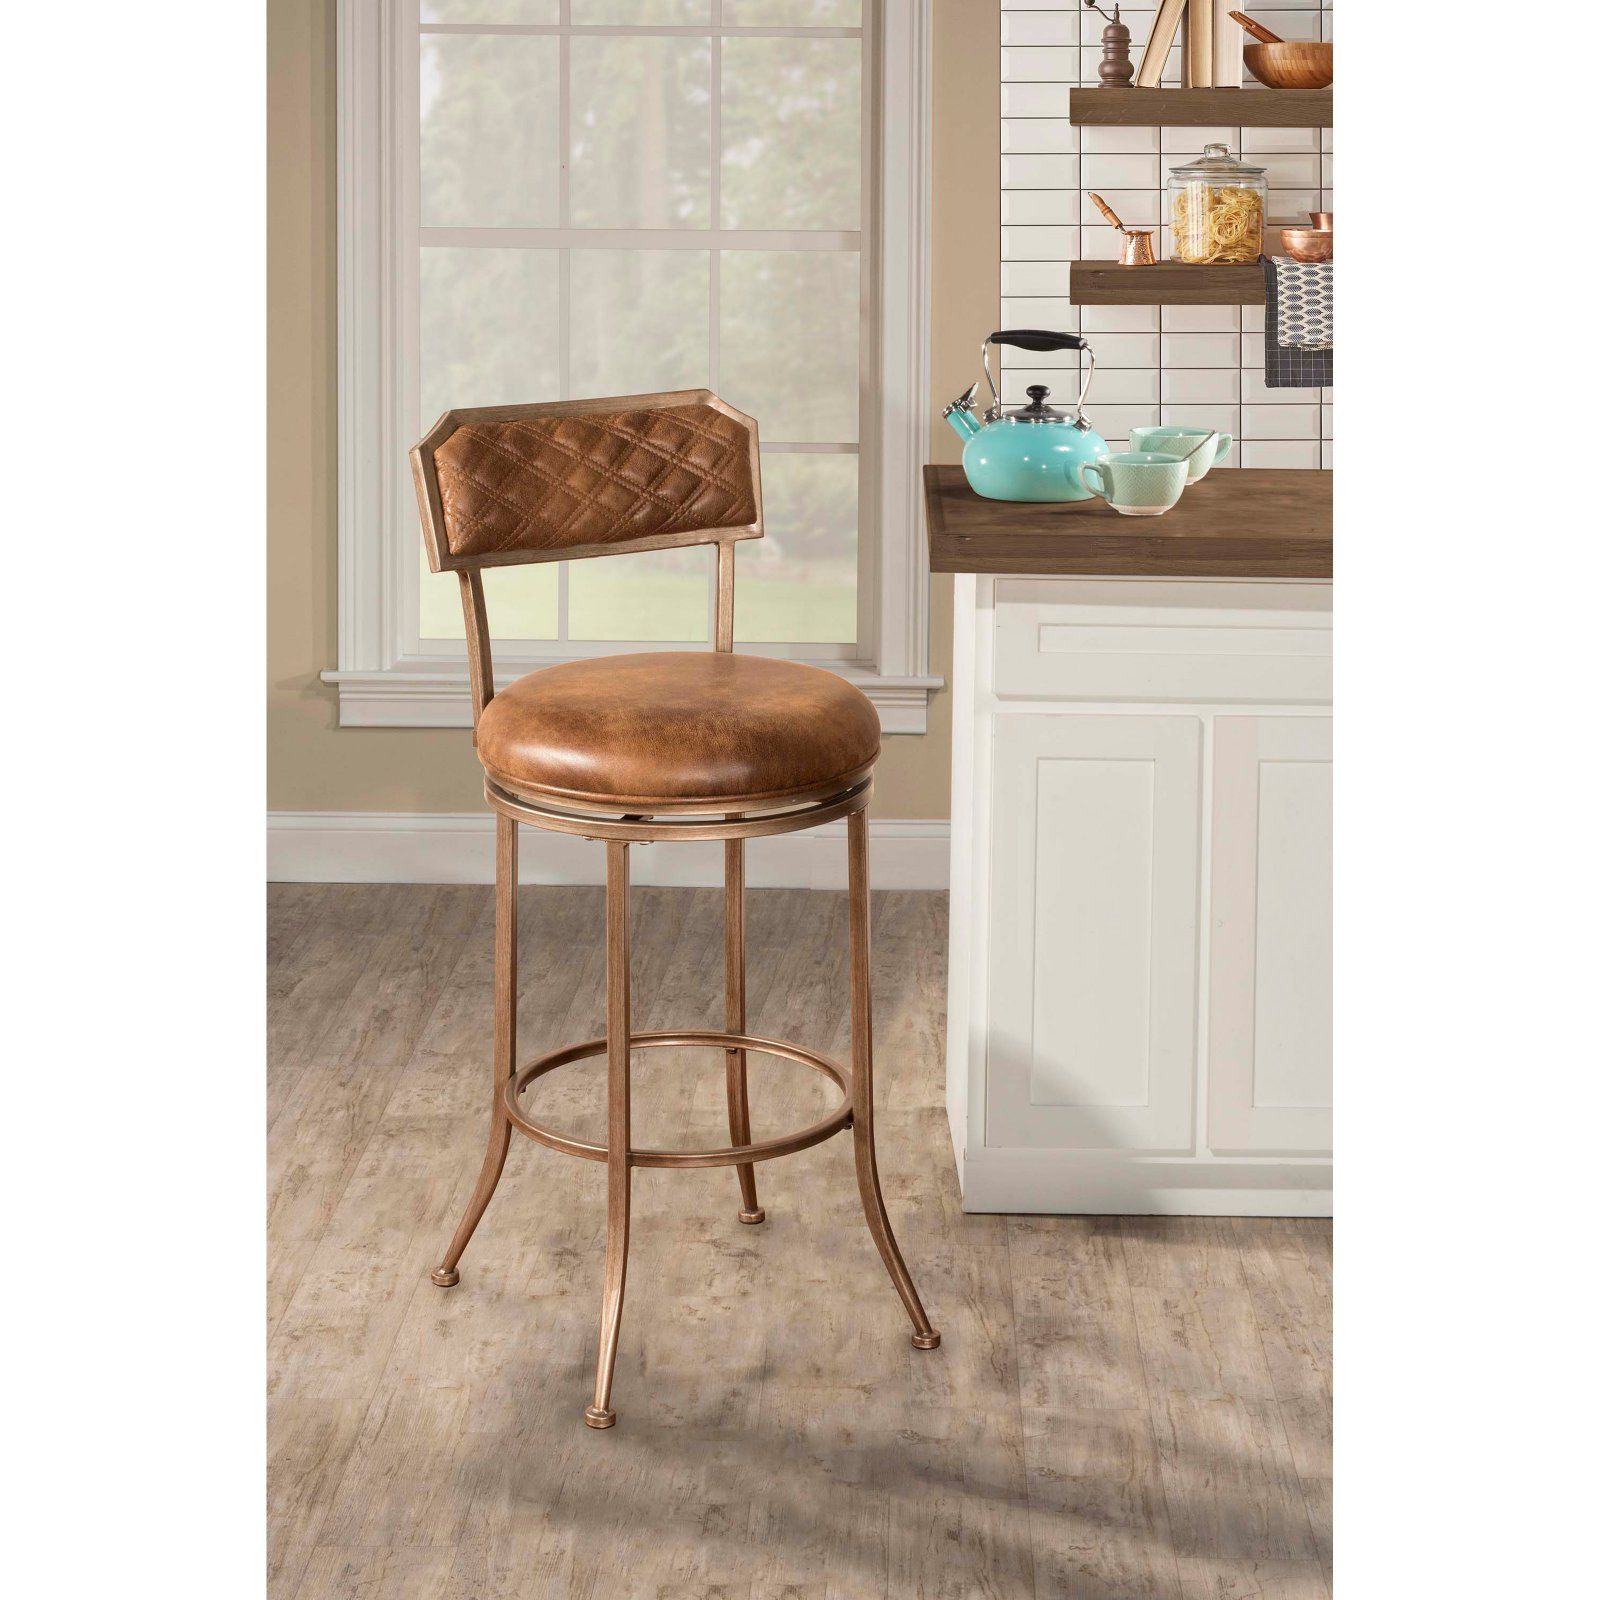 Fine Hillsdale Grant Swivel Bar Stool Products In 2019 Swivel Caraccident5 Cool Chair Designs And Ideas Caraccident5Info